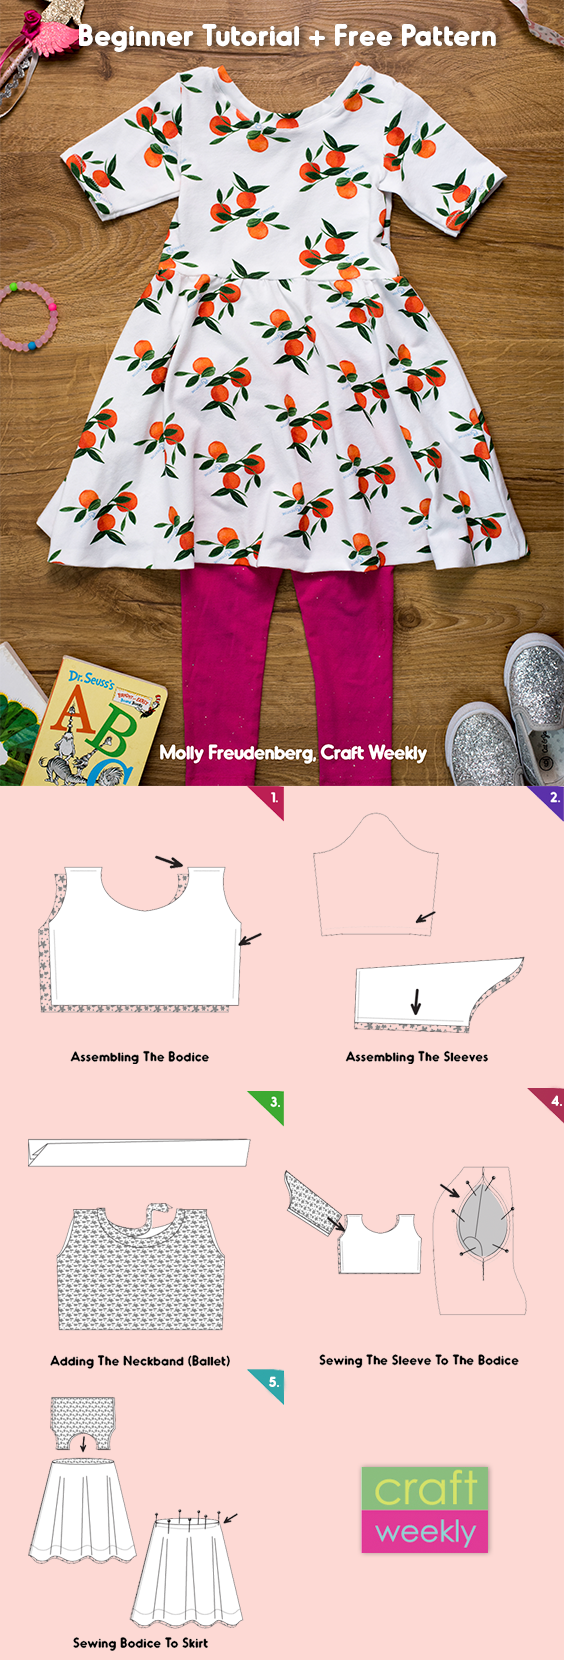 How To Make A Dress Step-By-Step + Free Sewing Pattern